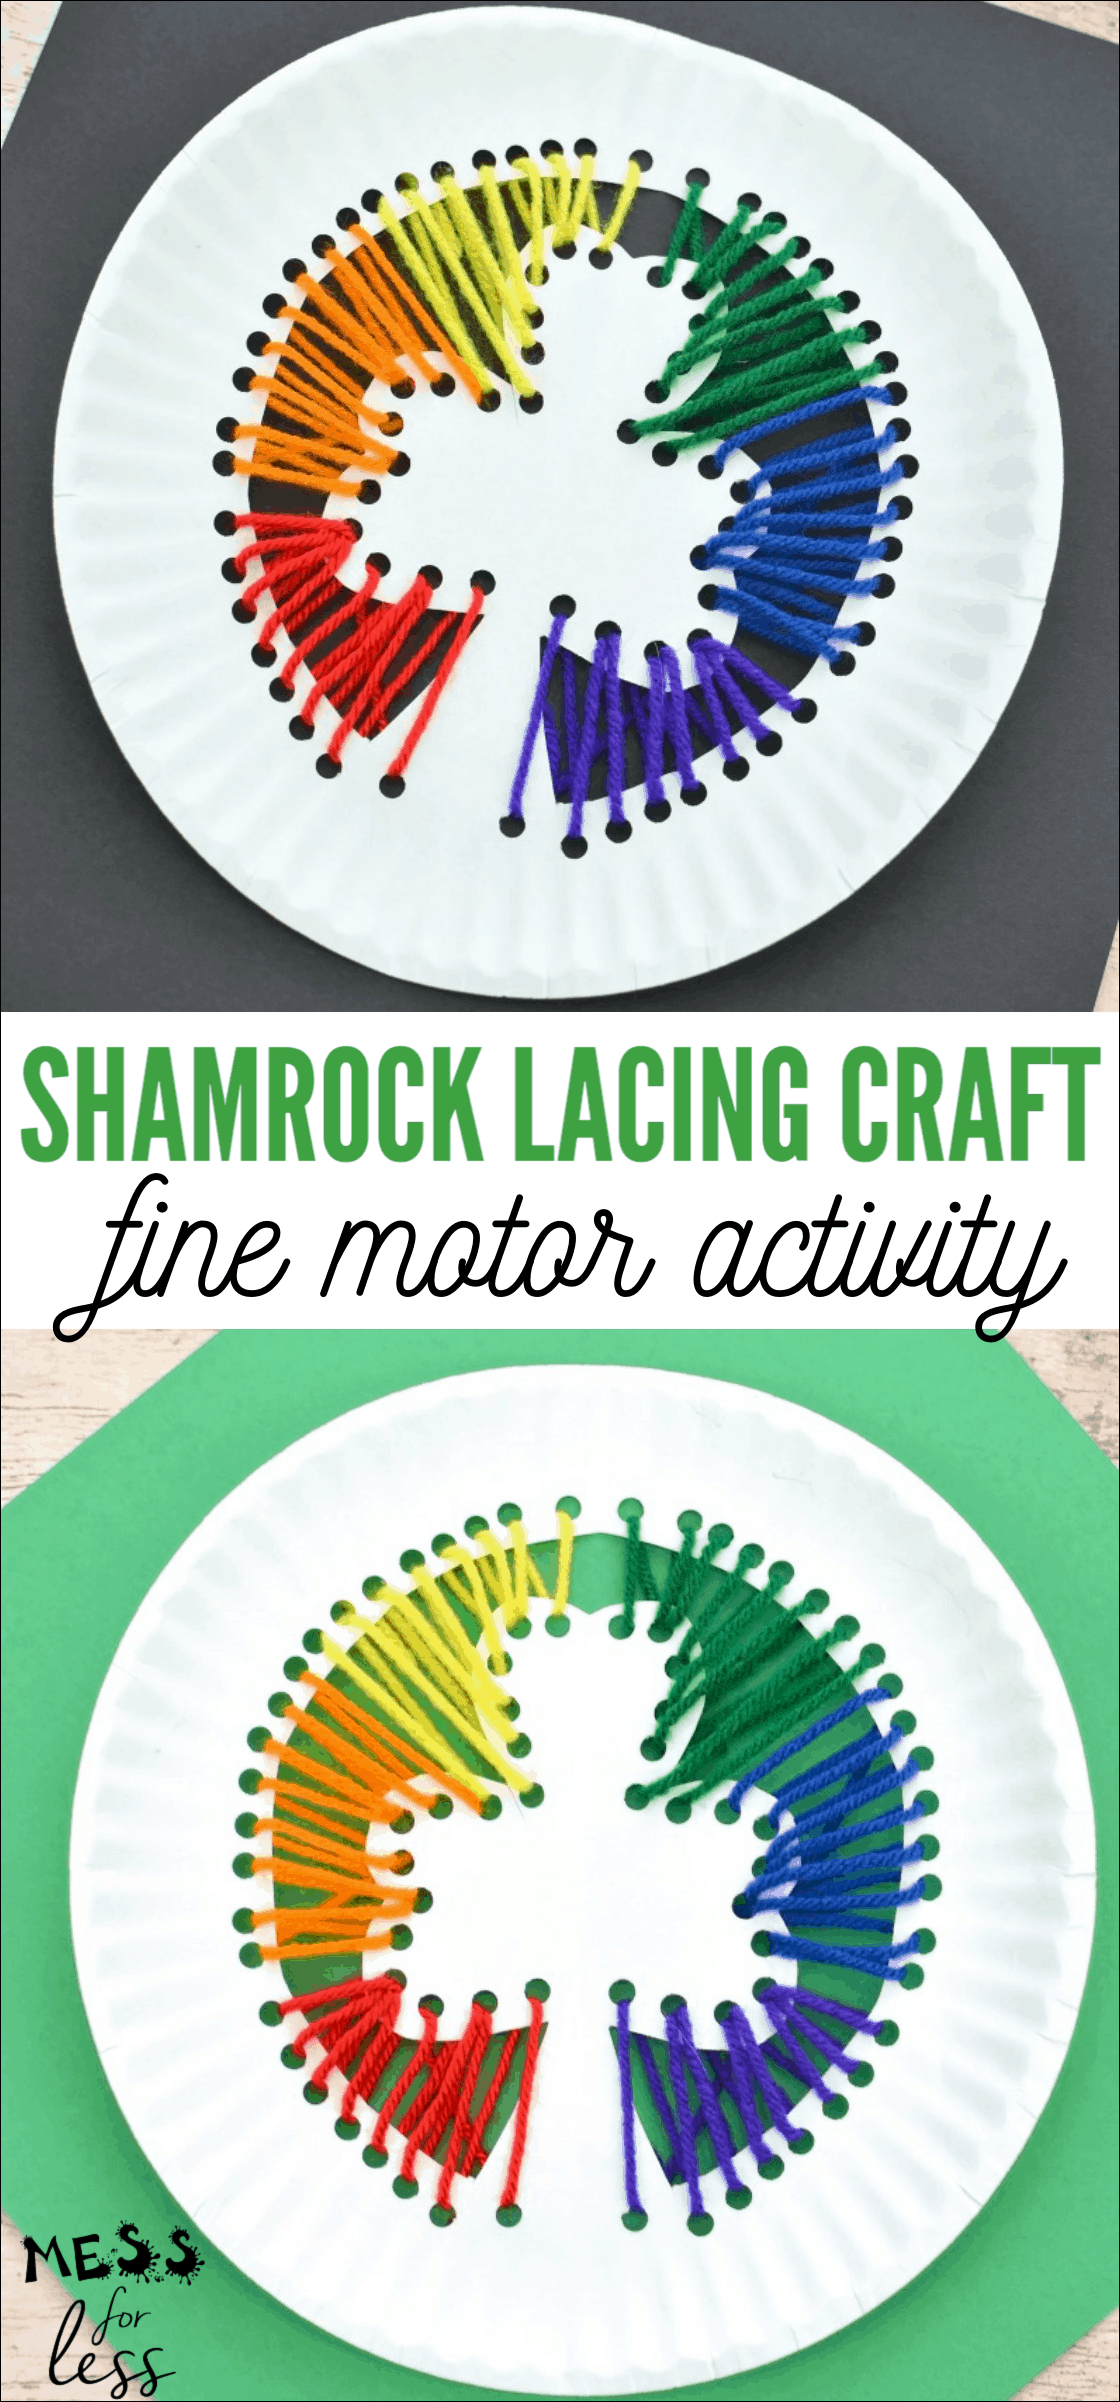 This Shamrock Lacing Craft gives kids the chance to create an eye catching shamrock while working on those all important fine motor skills. #Stpatricksday #finemotoractivity #stpatricksdaycraft